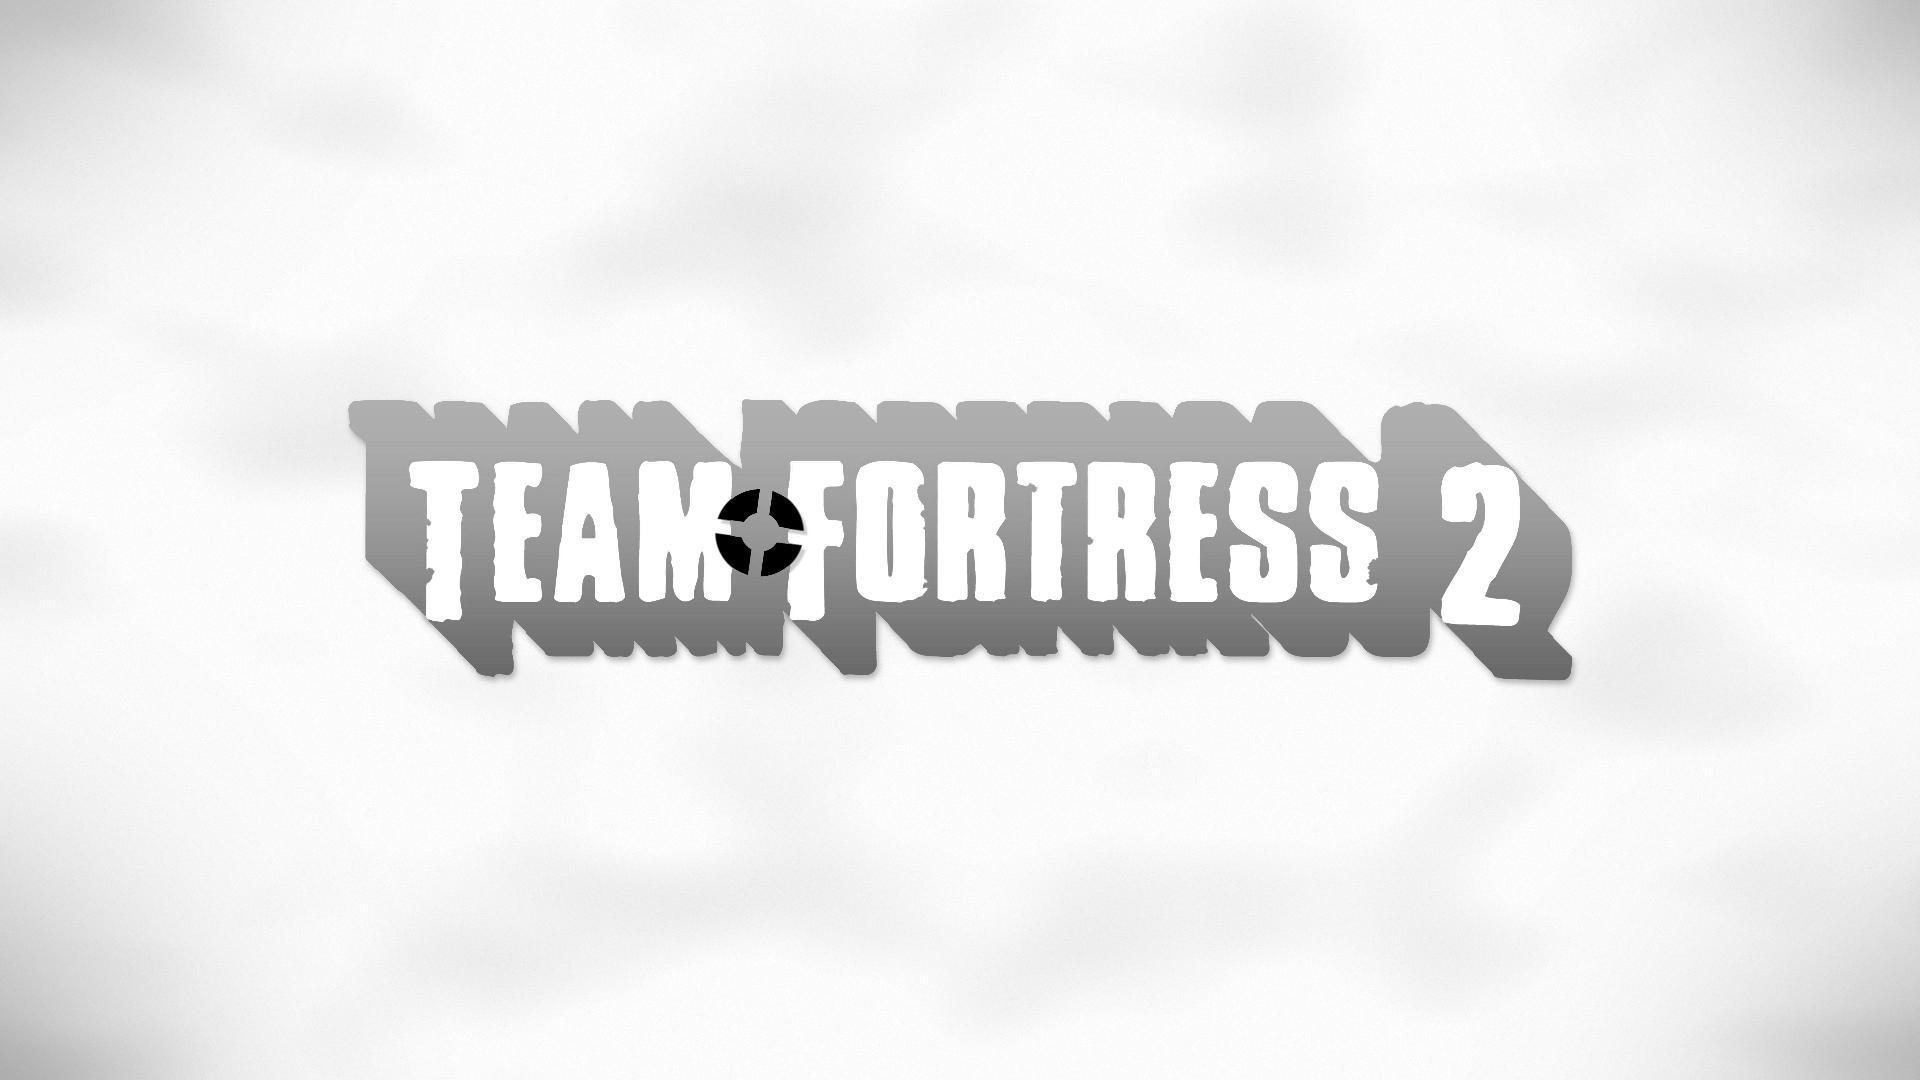 Team fortress 2 wallpapers wallpaper cave - Tf2 logo wallpaper ...